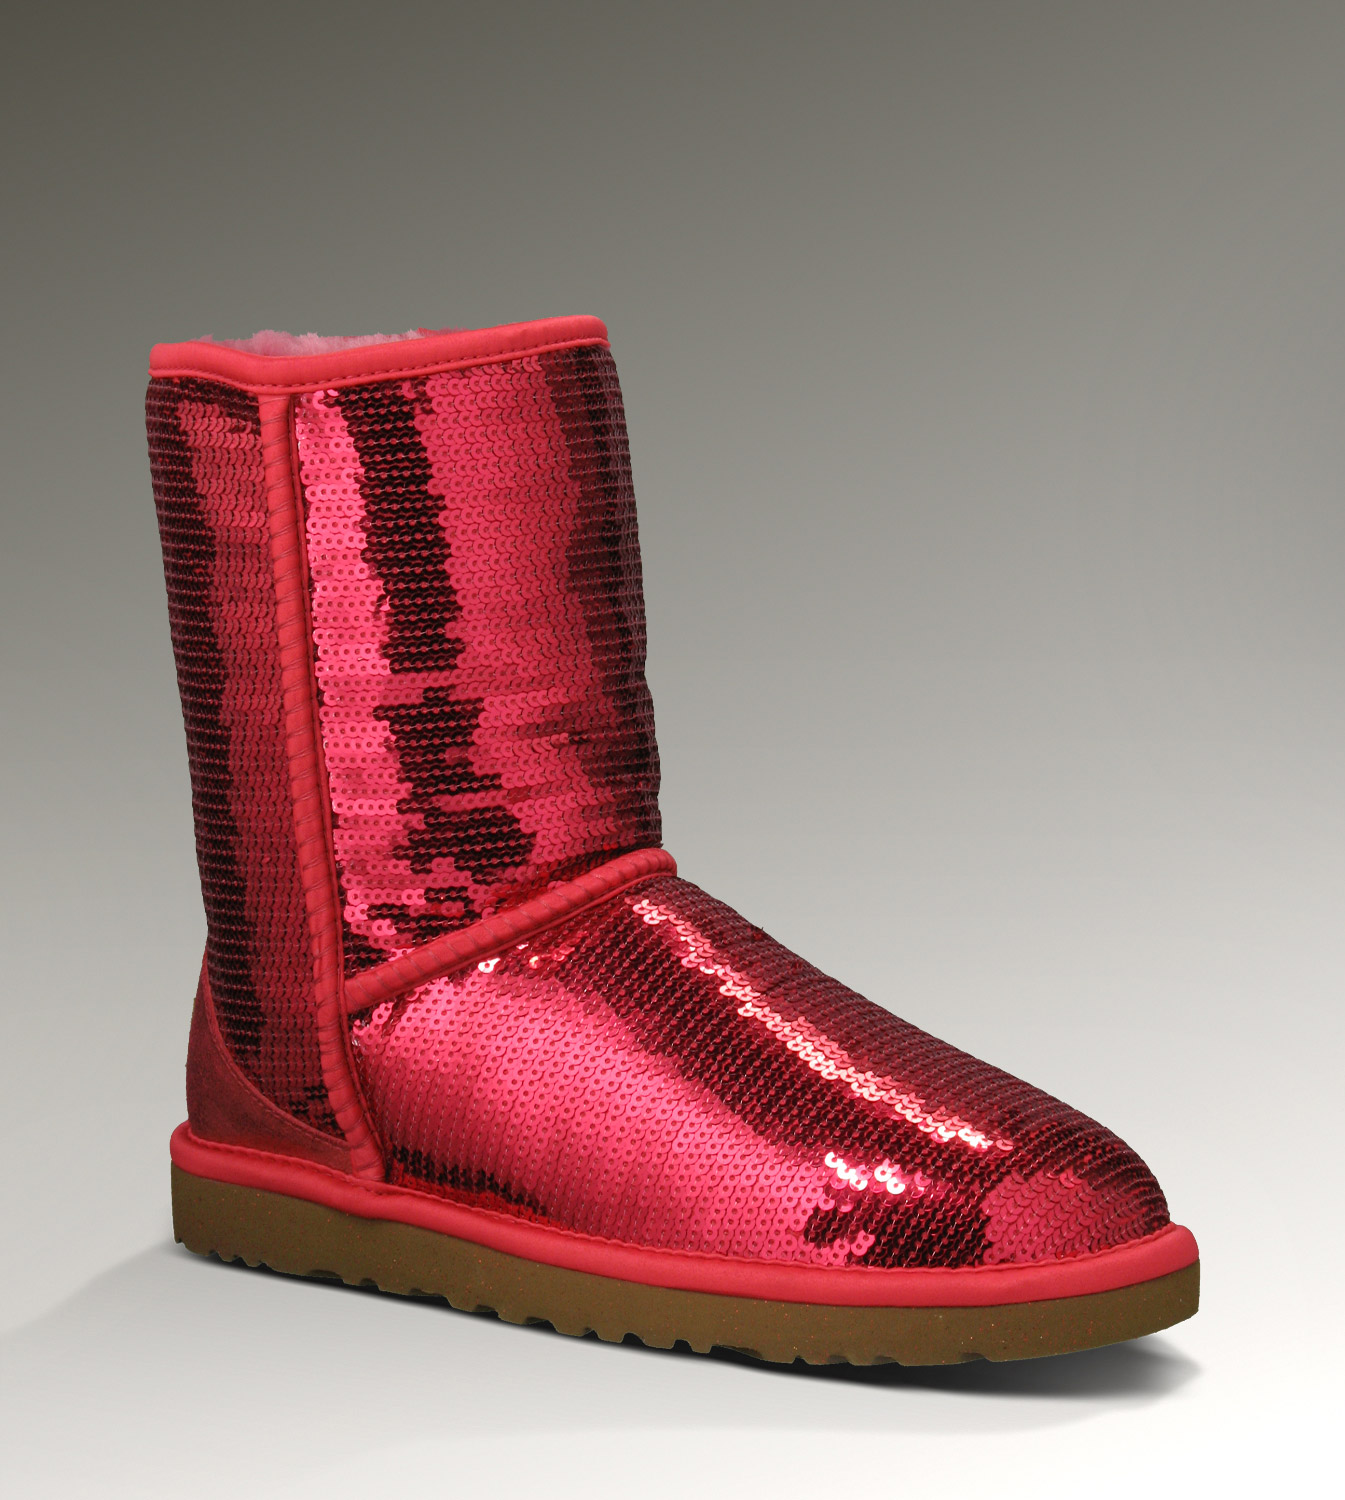 UGG Classic Short Sparkles 3161 Red Boots